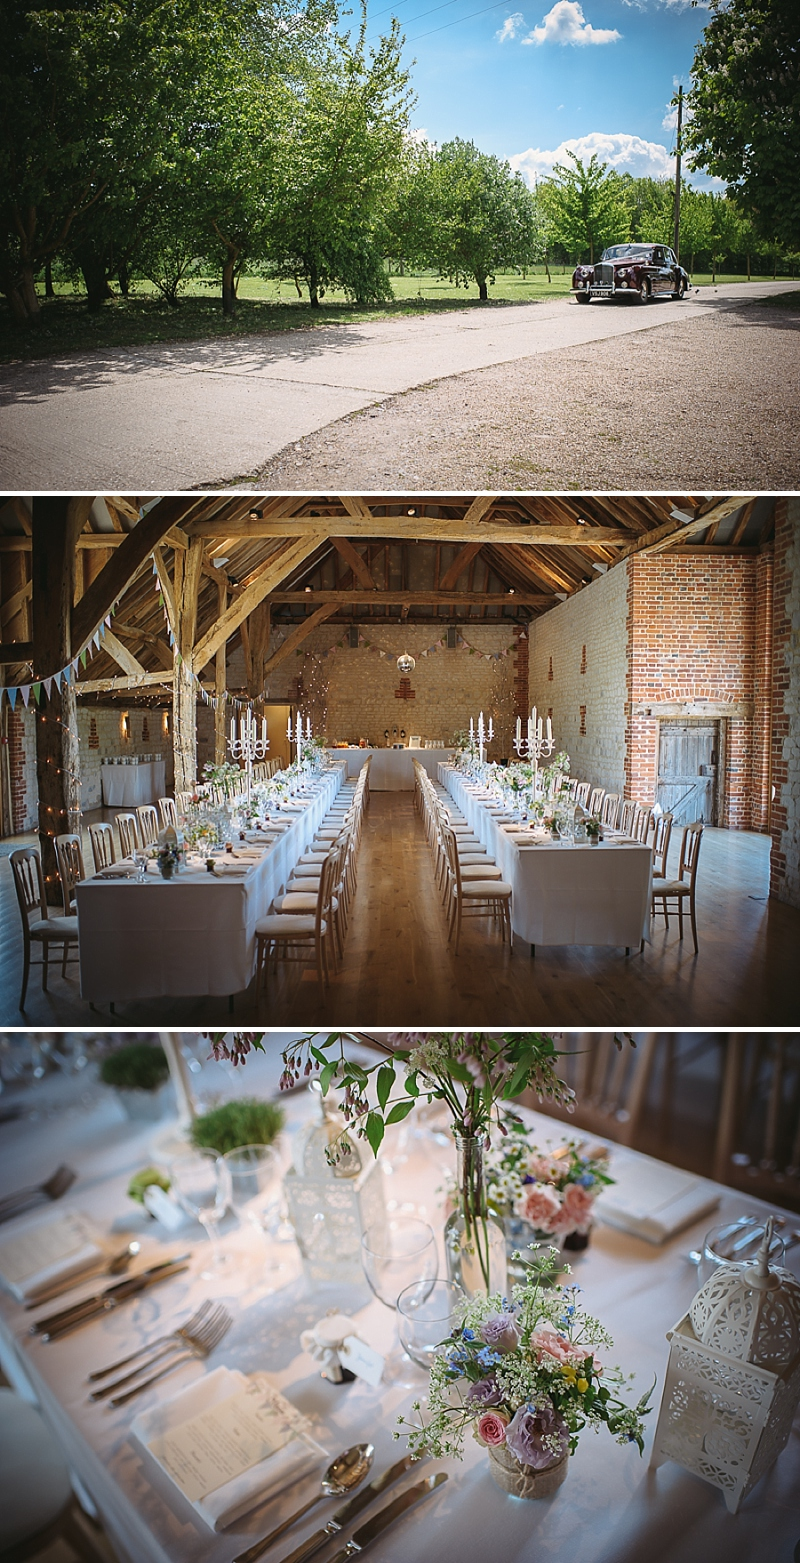 An English Country Garden themed Wedding At Bury Court Barn Hampshire